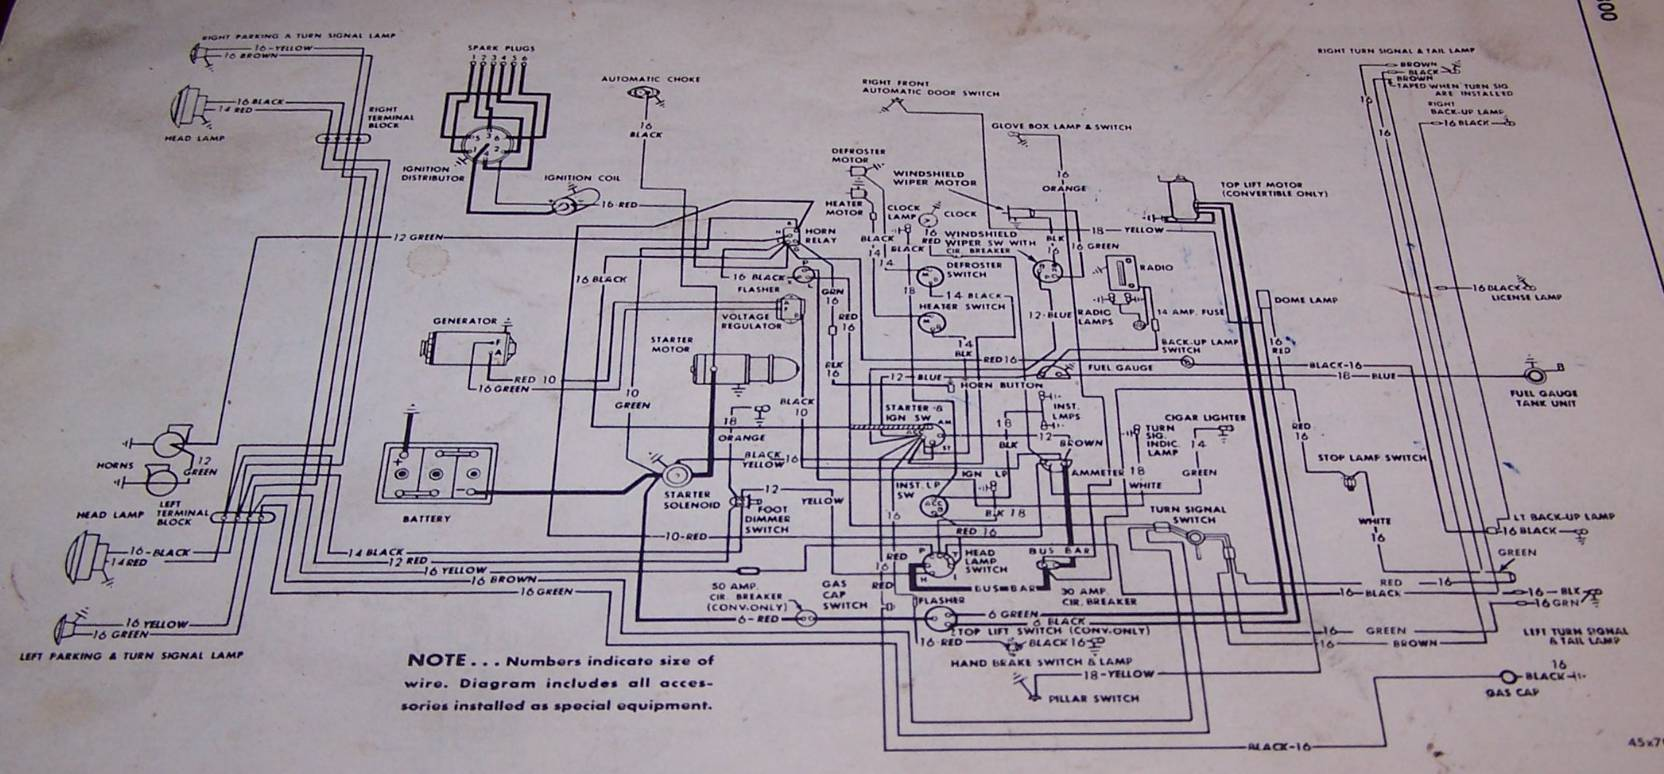 1948 Studebaker Wiring Diagram Opinions About Vespa Free Images Gallery